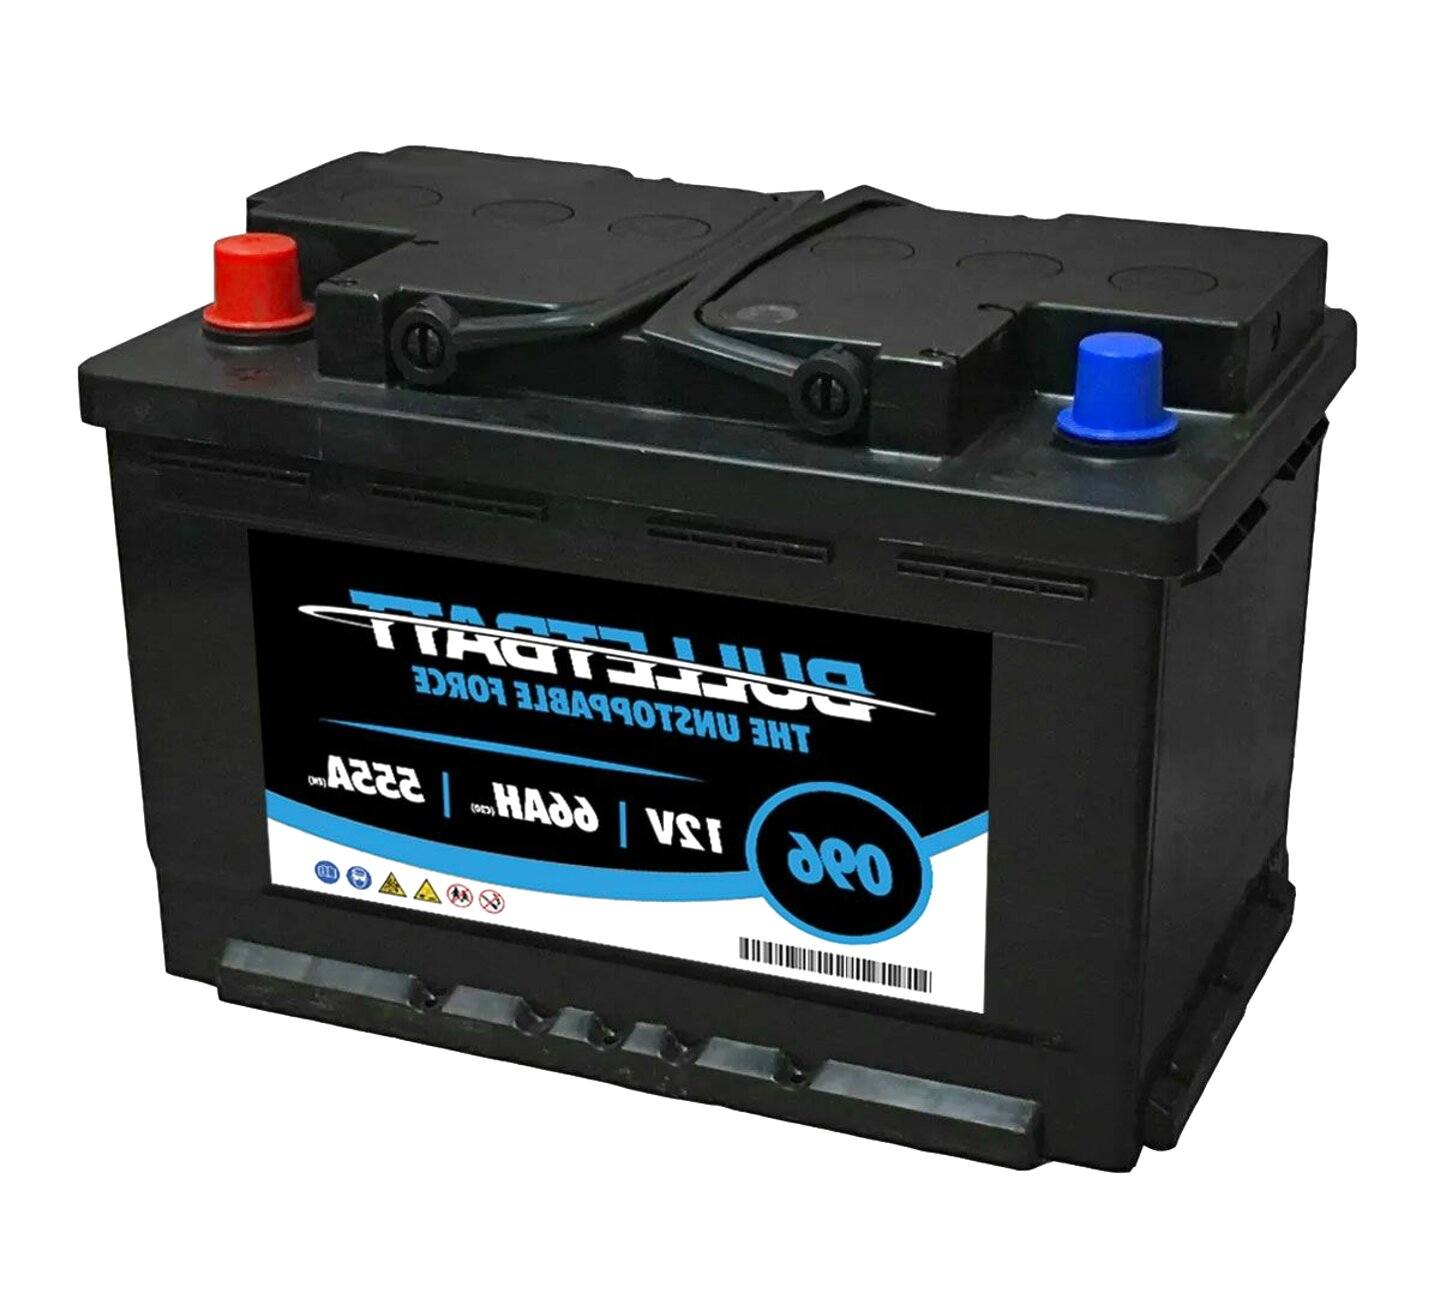 096 battery for sale